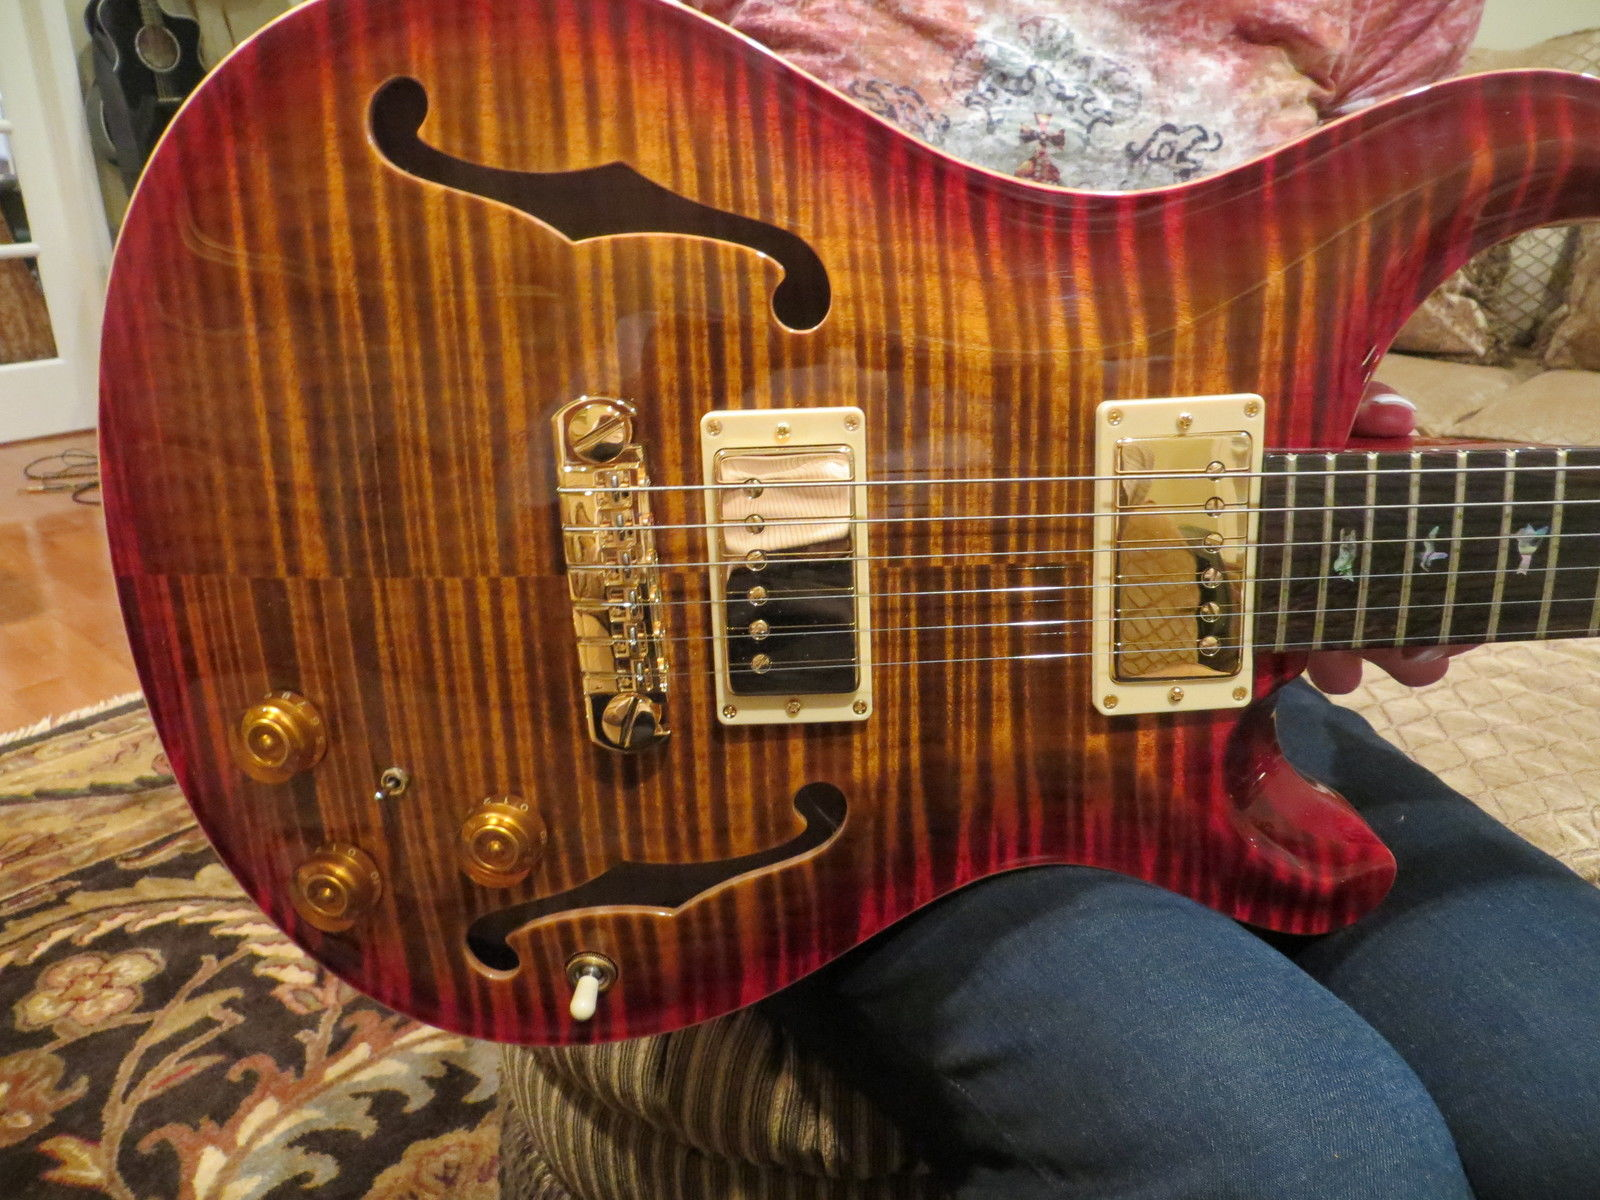 Prs Private Stock Hollowbody 2 Cherry Burst Flame Top Back Brazilian Fretboard